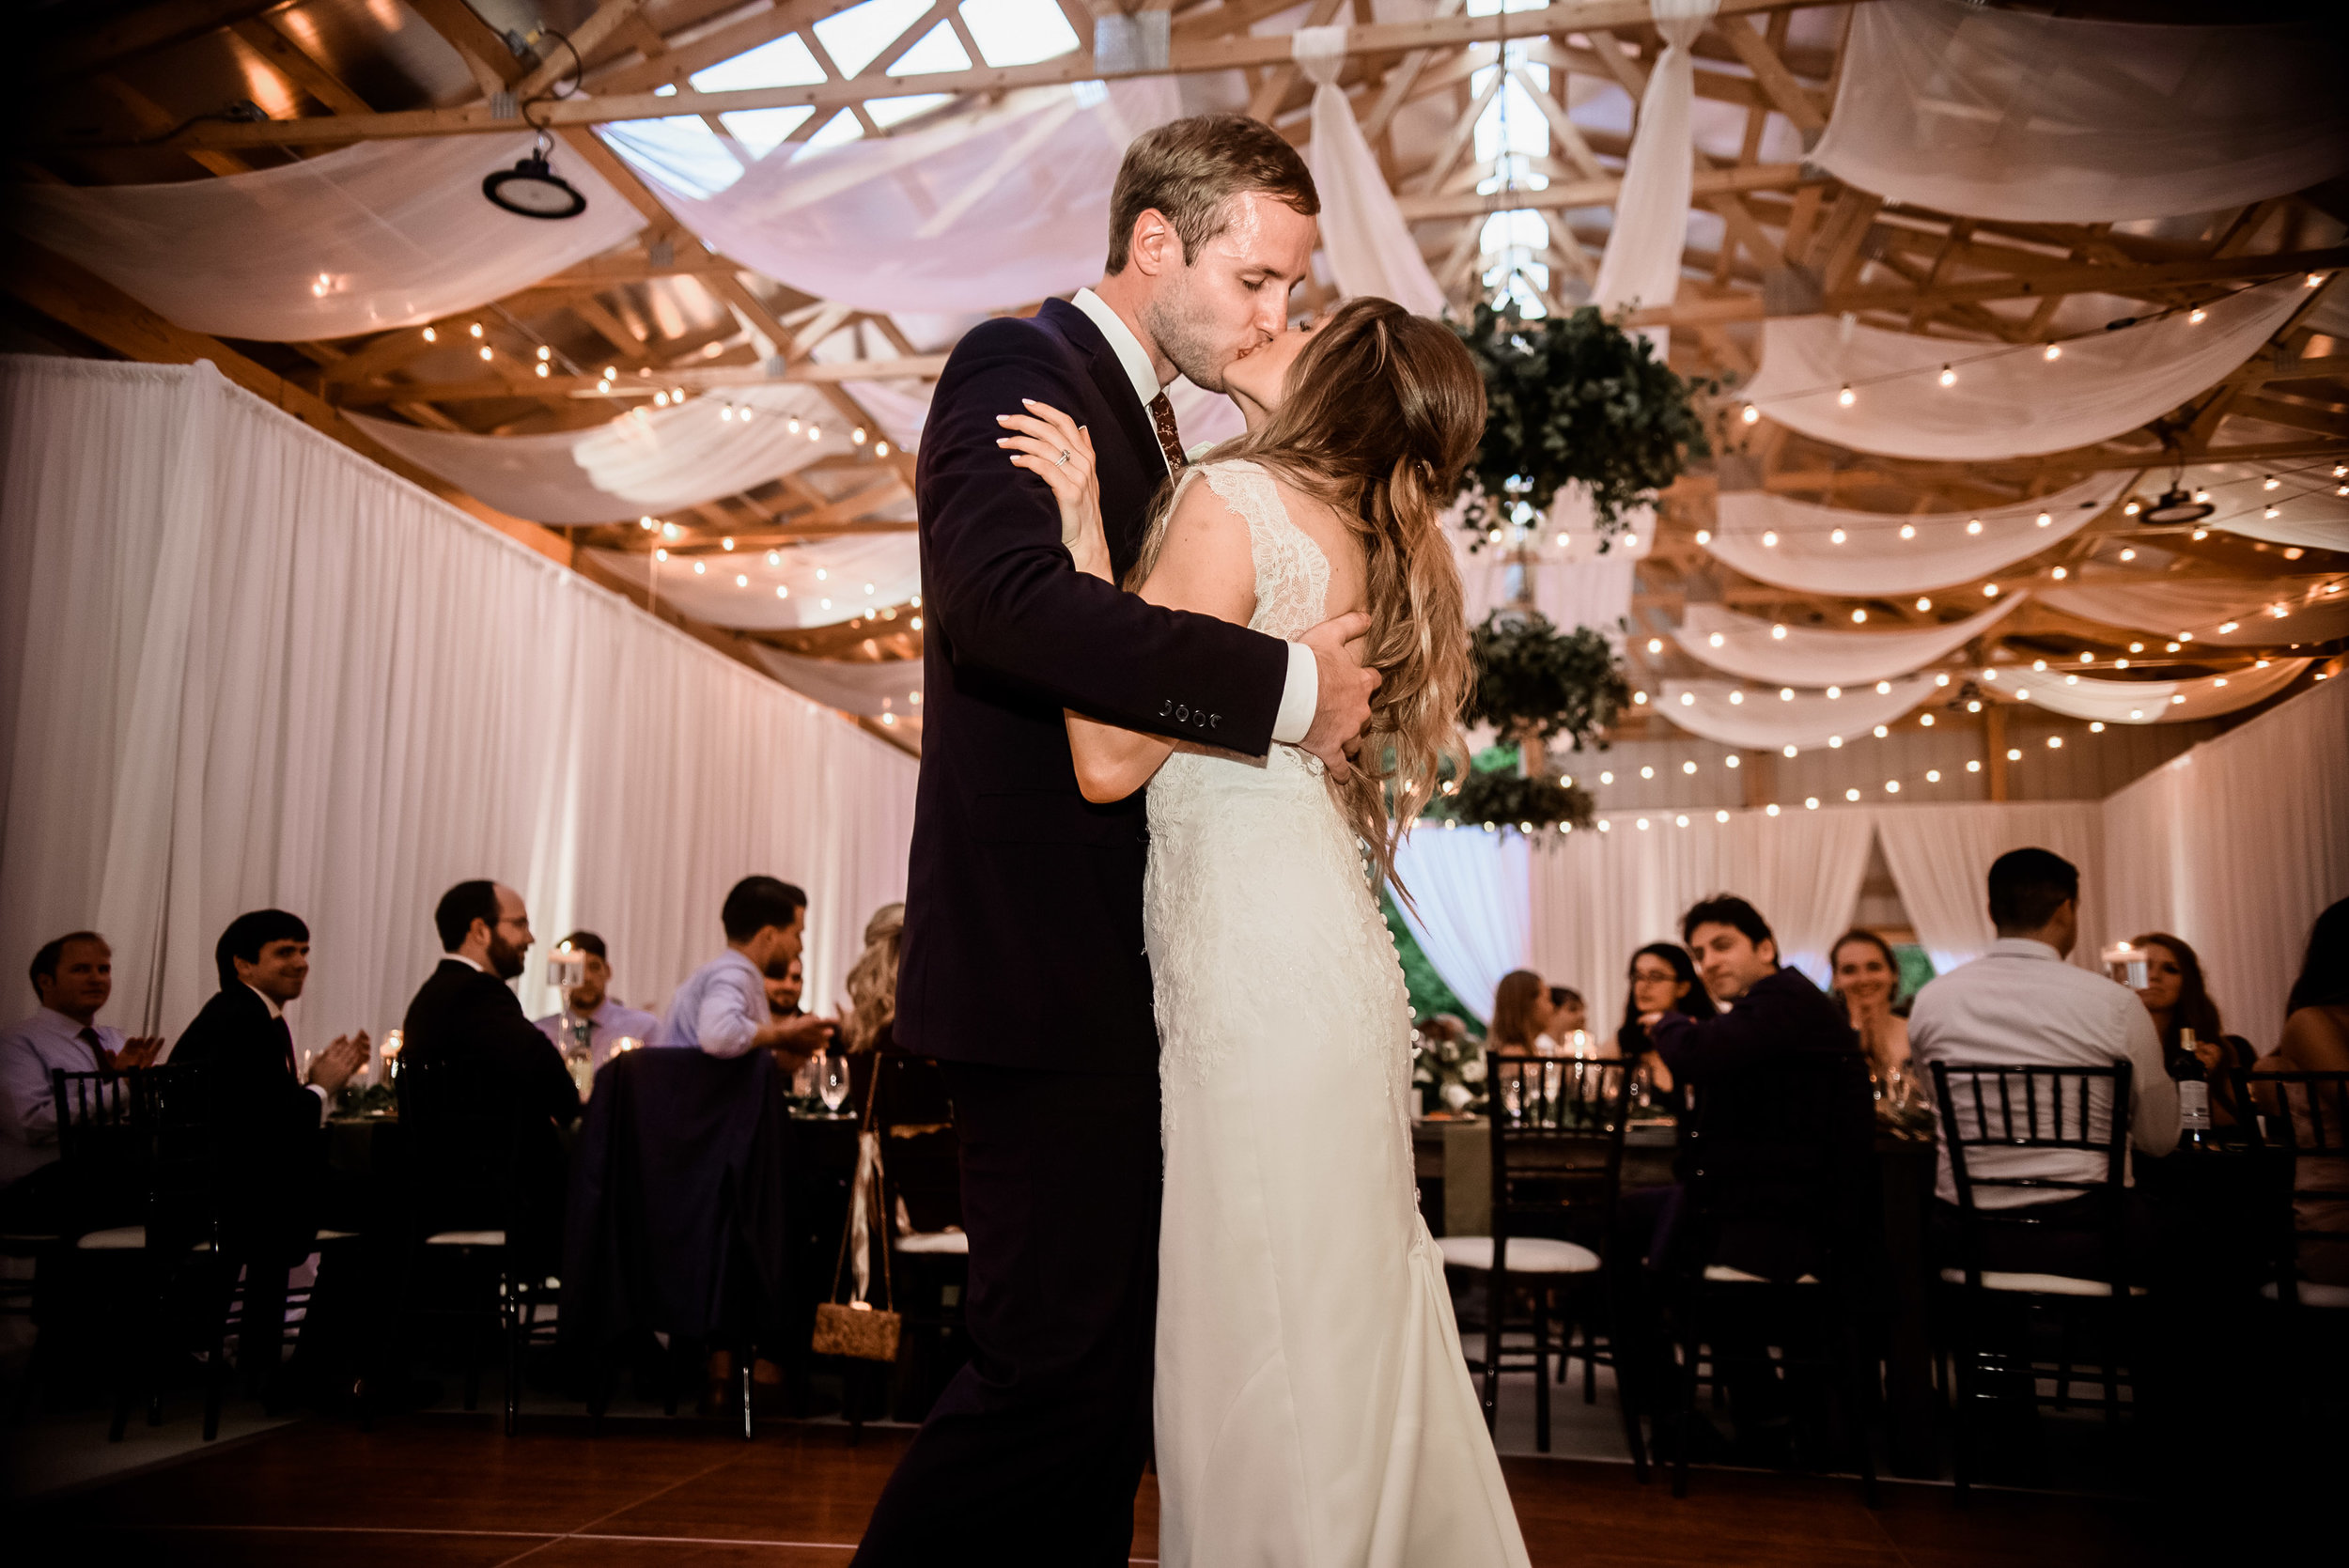 Bride and groom on the dance floor at wedding reception for Pittsburgh wedding planned by Exhale Events. Find more wedding inspiration at exhale-events.com!